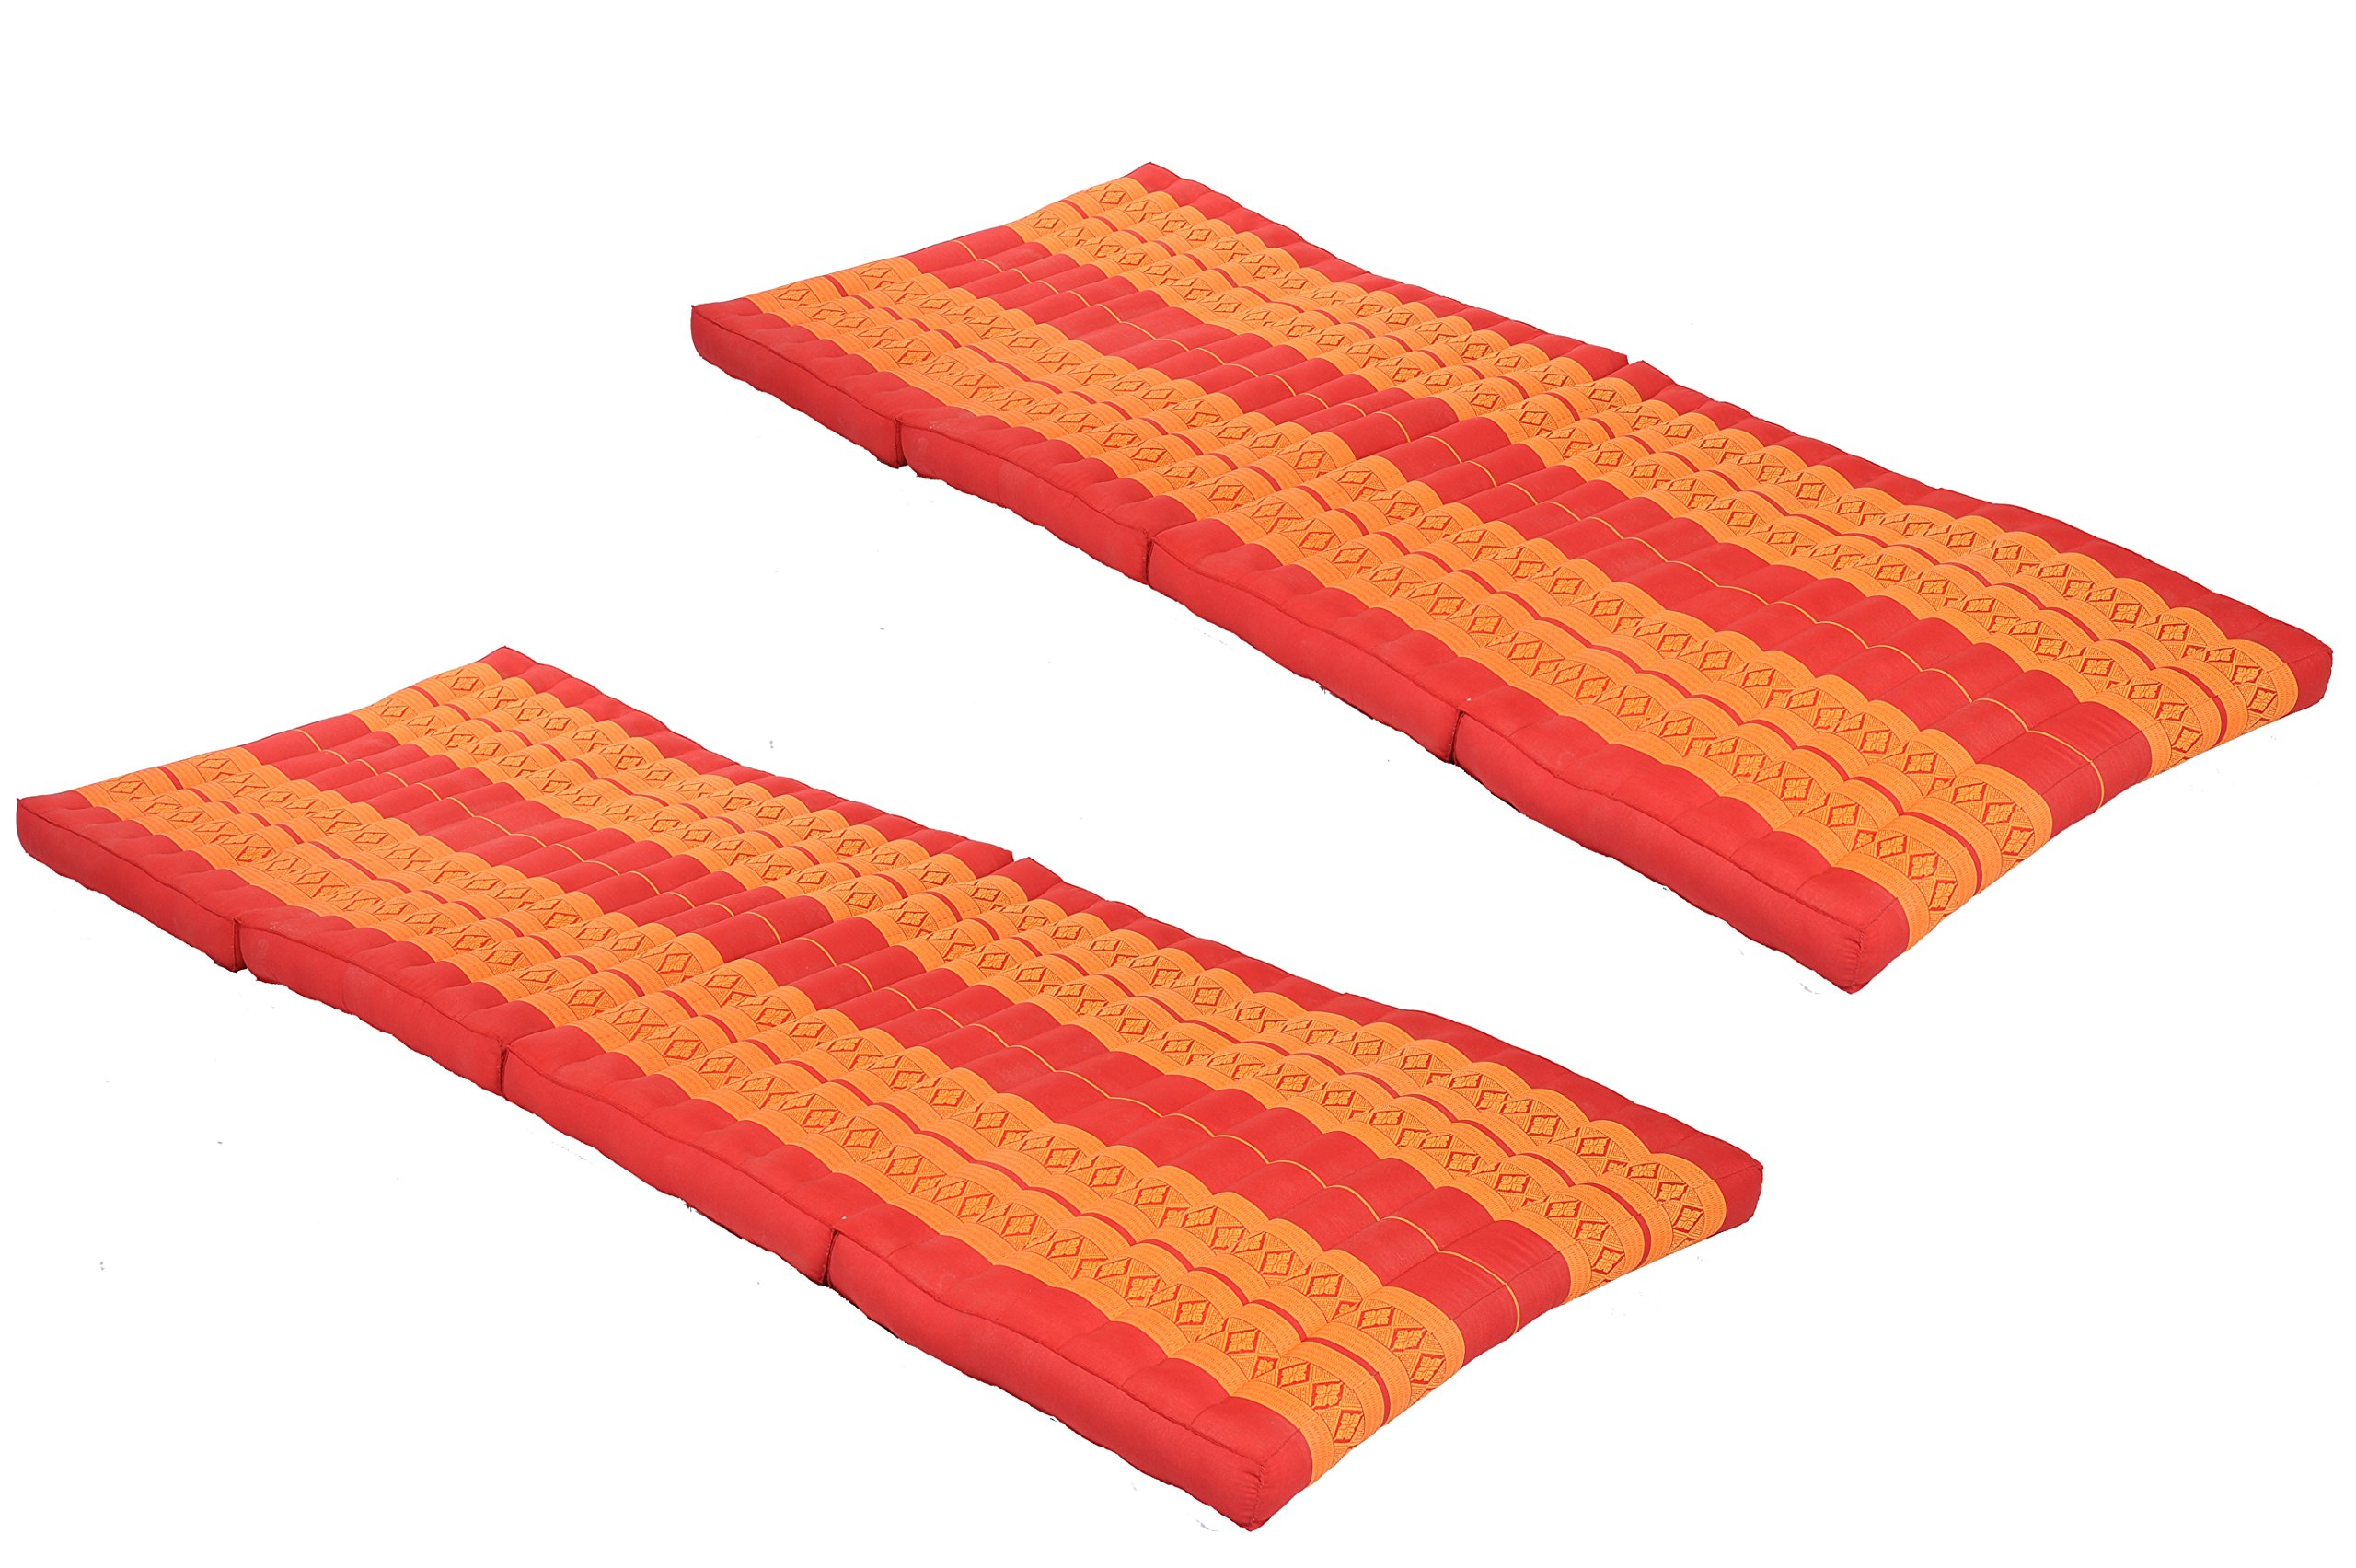 Pack: 2x 4-Fold Mattress (79x32inches), Traditional Thai Design red-orange, (100% Kapok filling) by Handelsturm